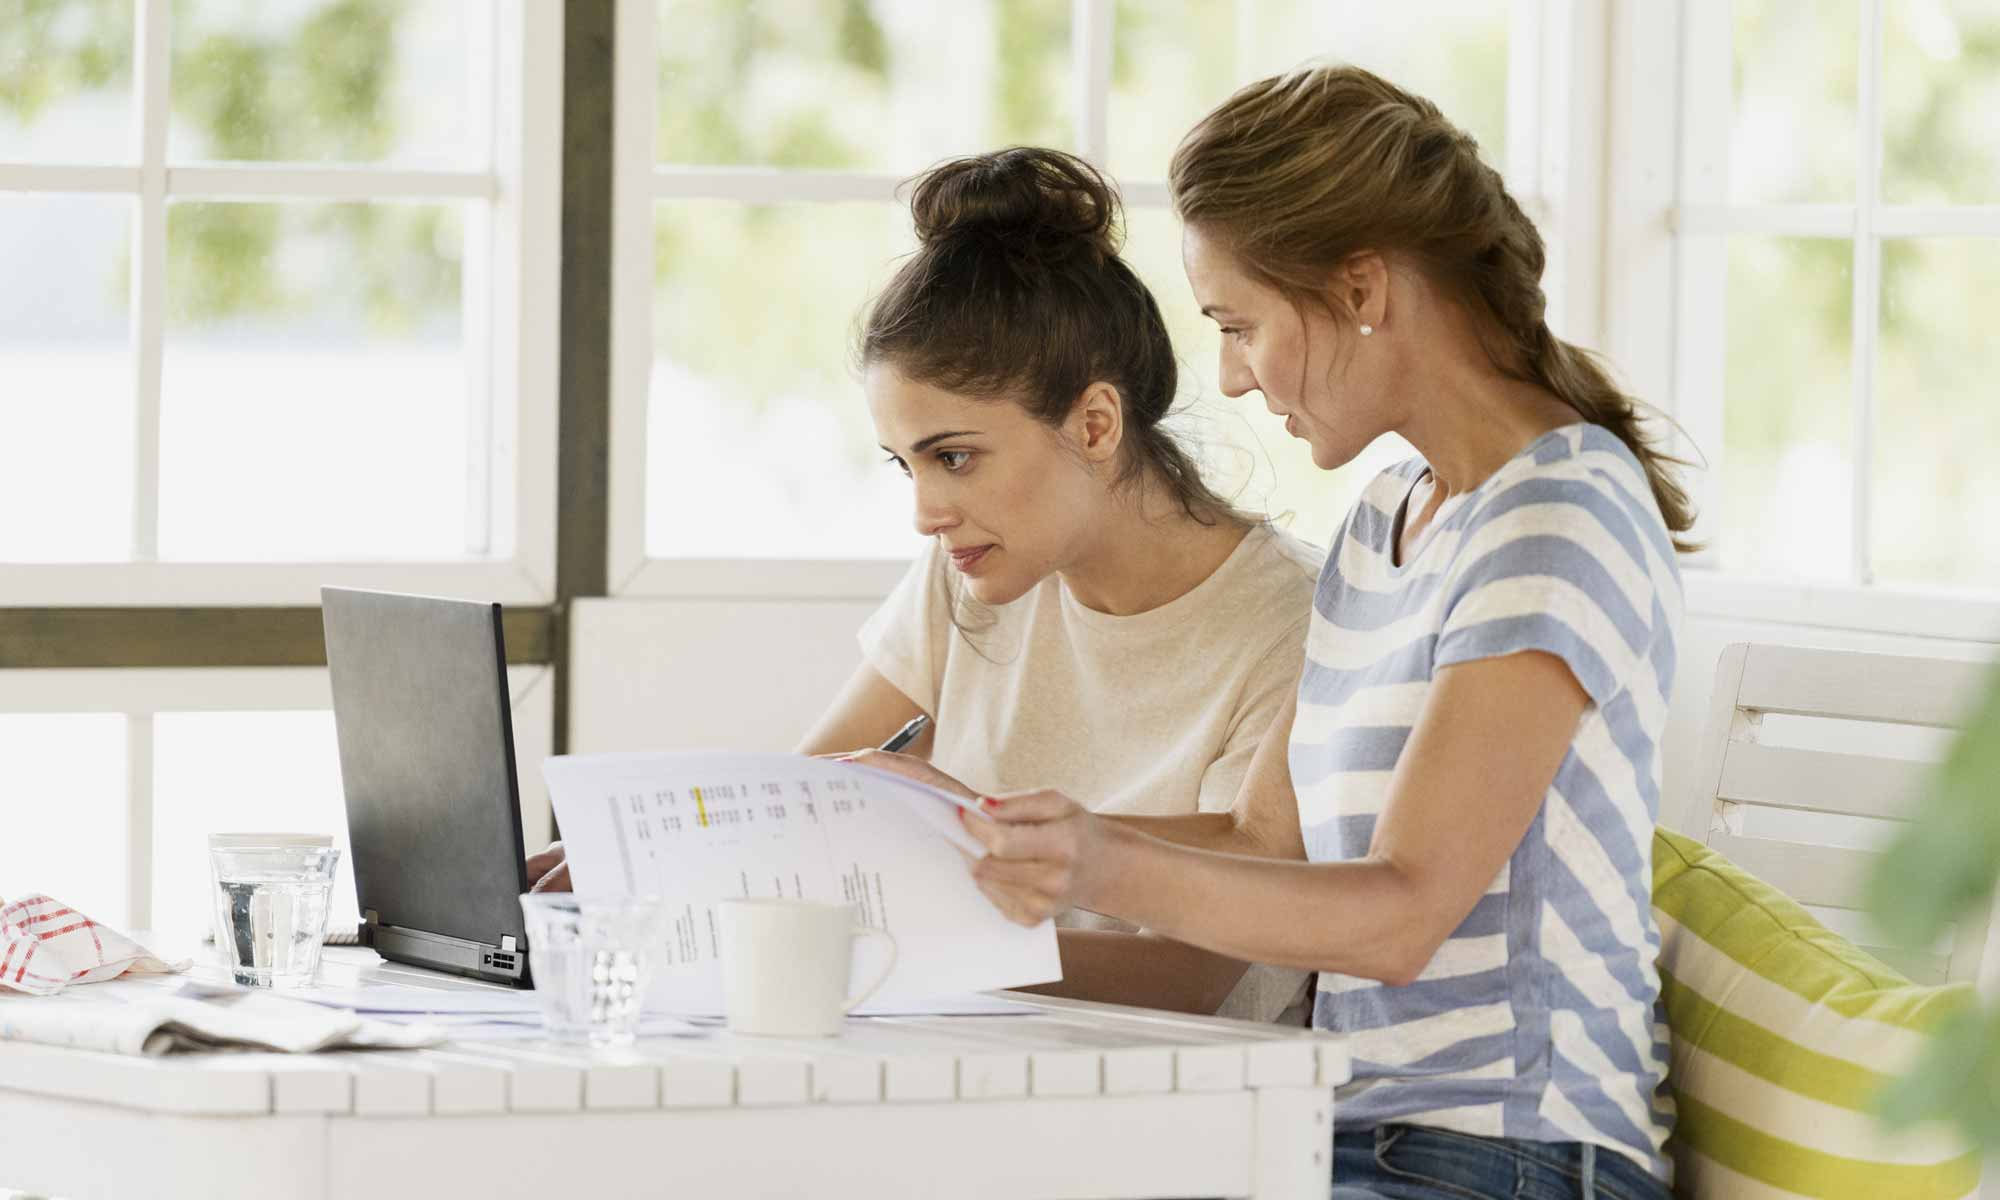 Two women in front of a laptop